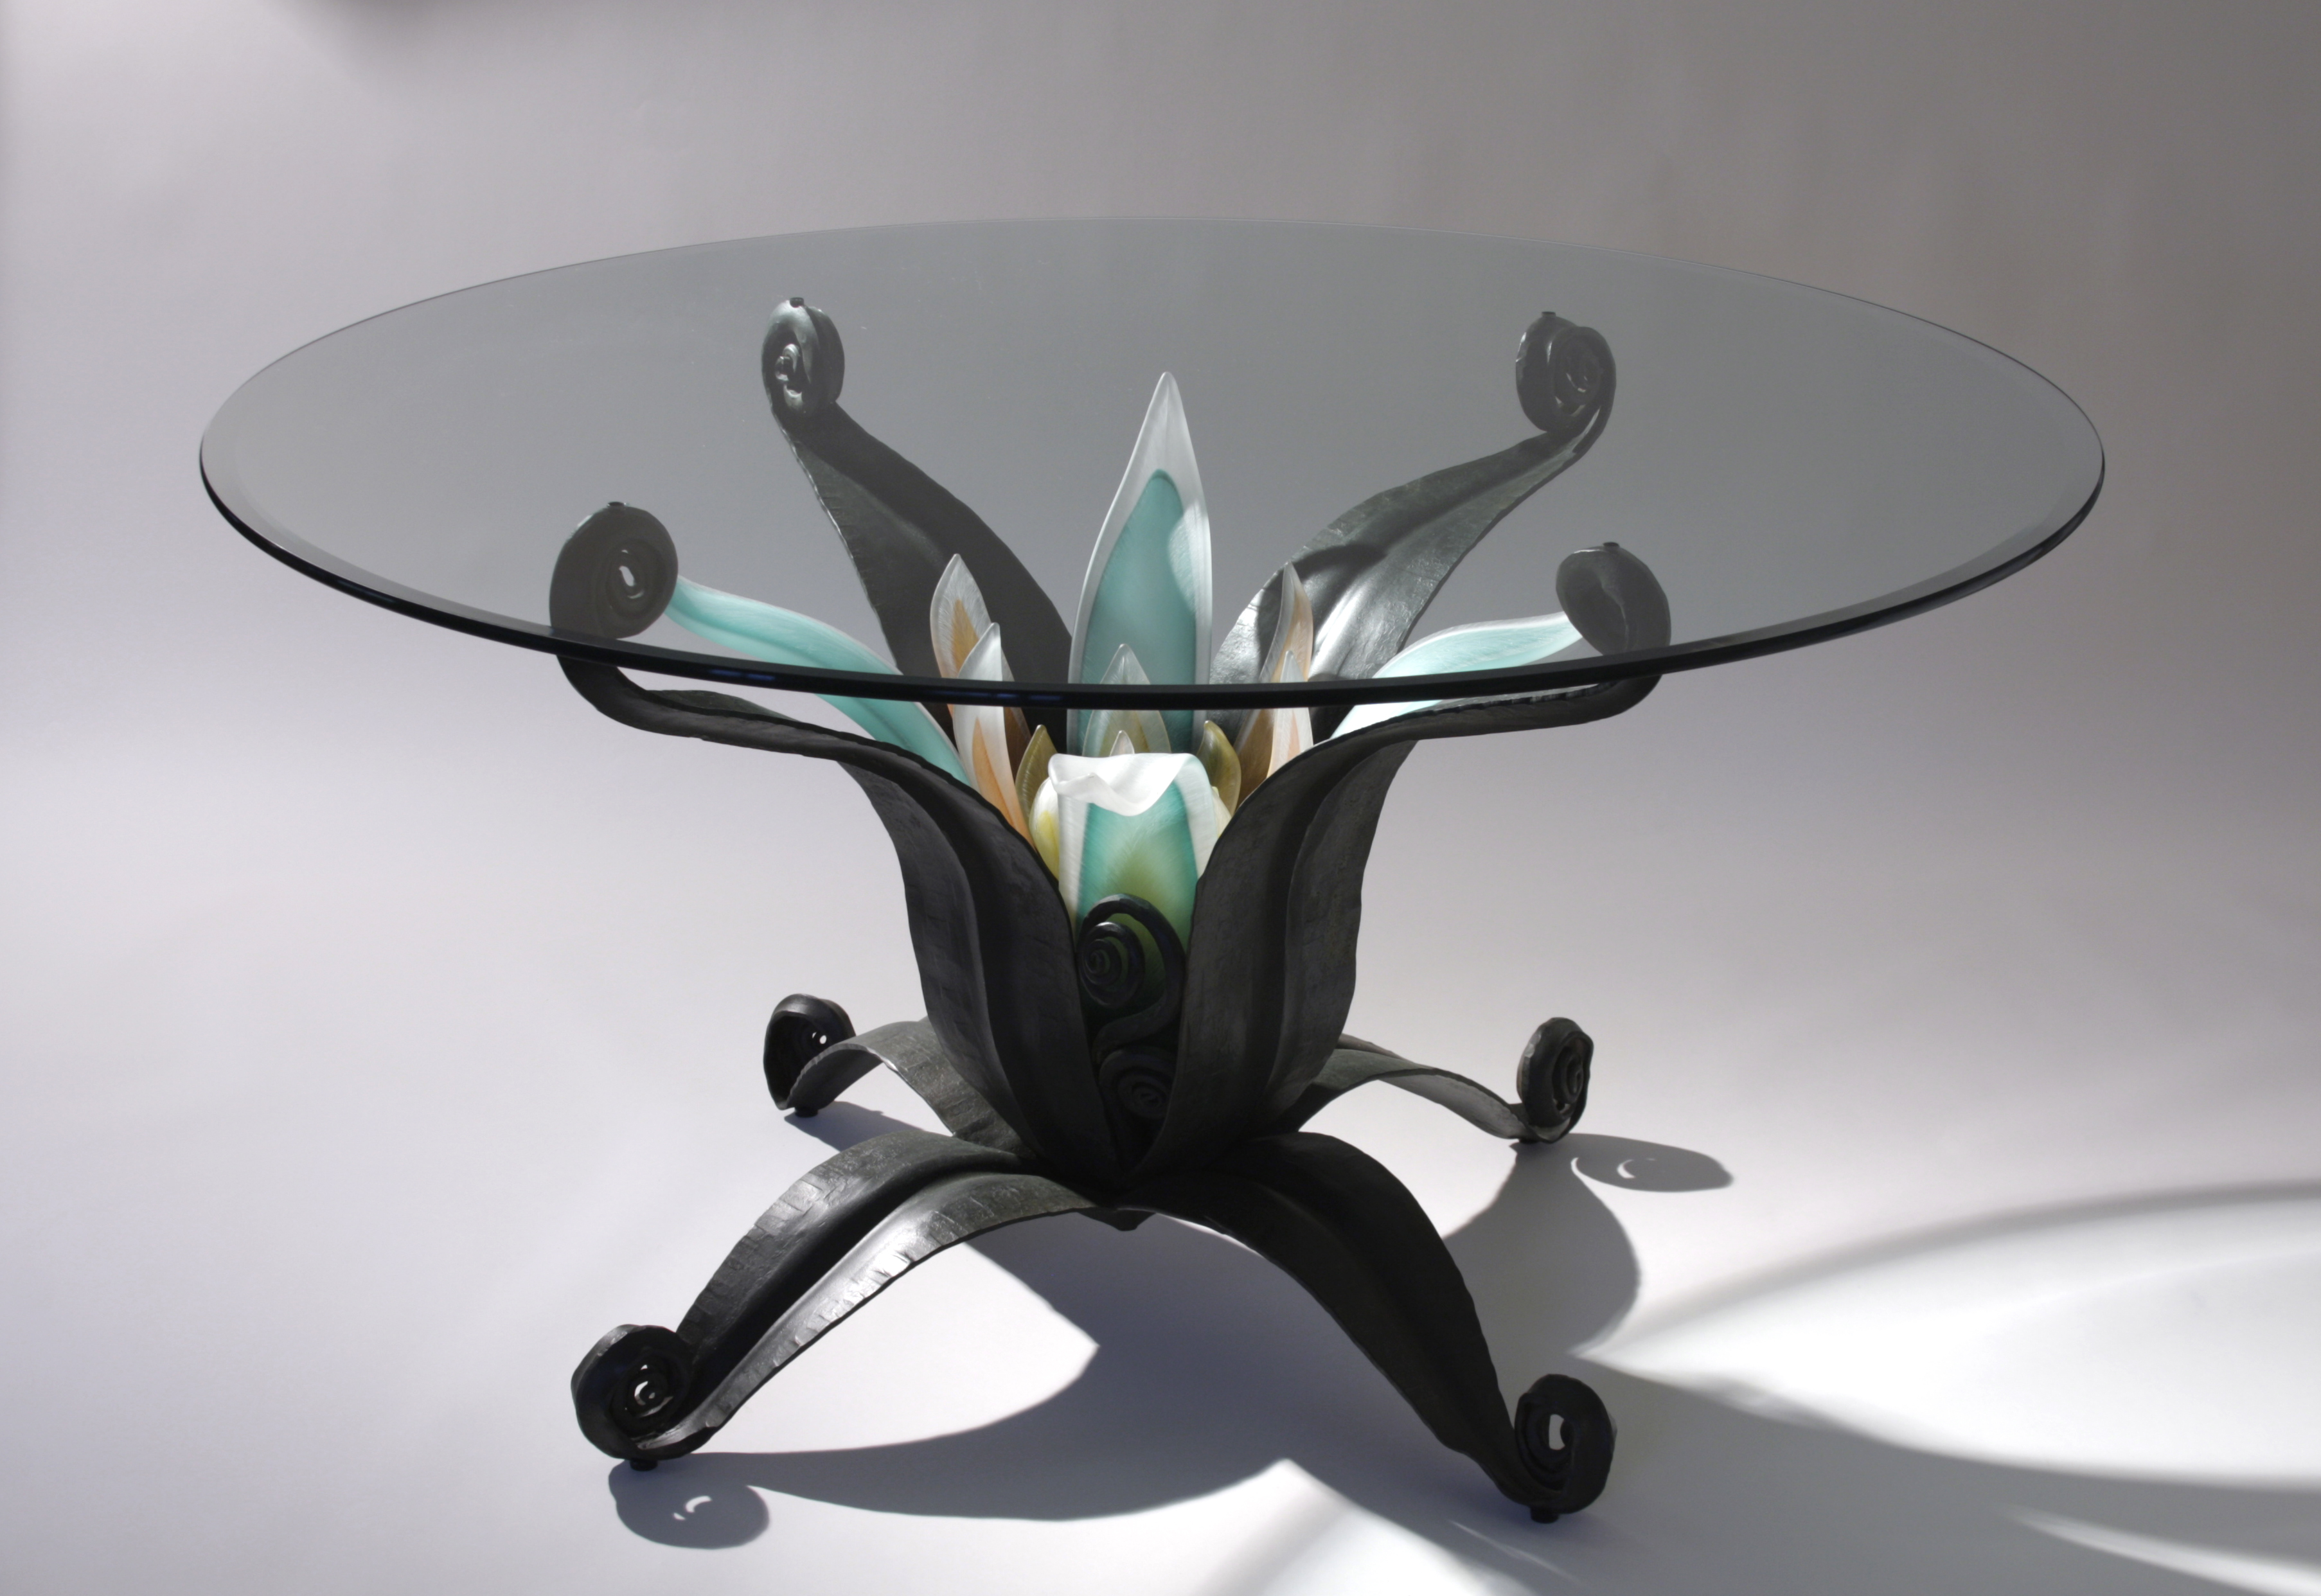 Table with clear glass top, flower center surrounded by forged steel base.